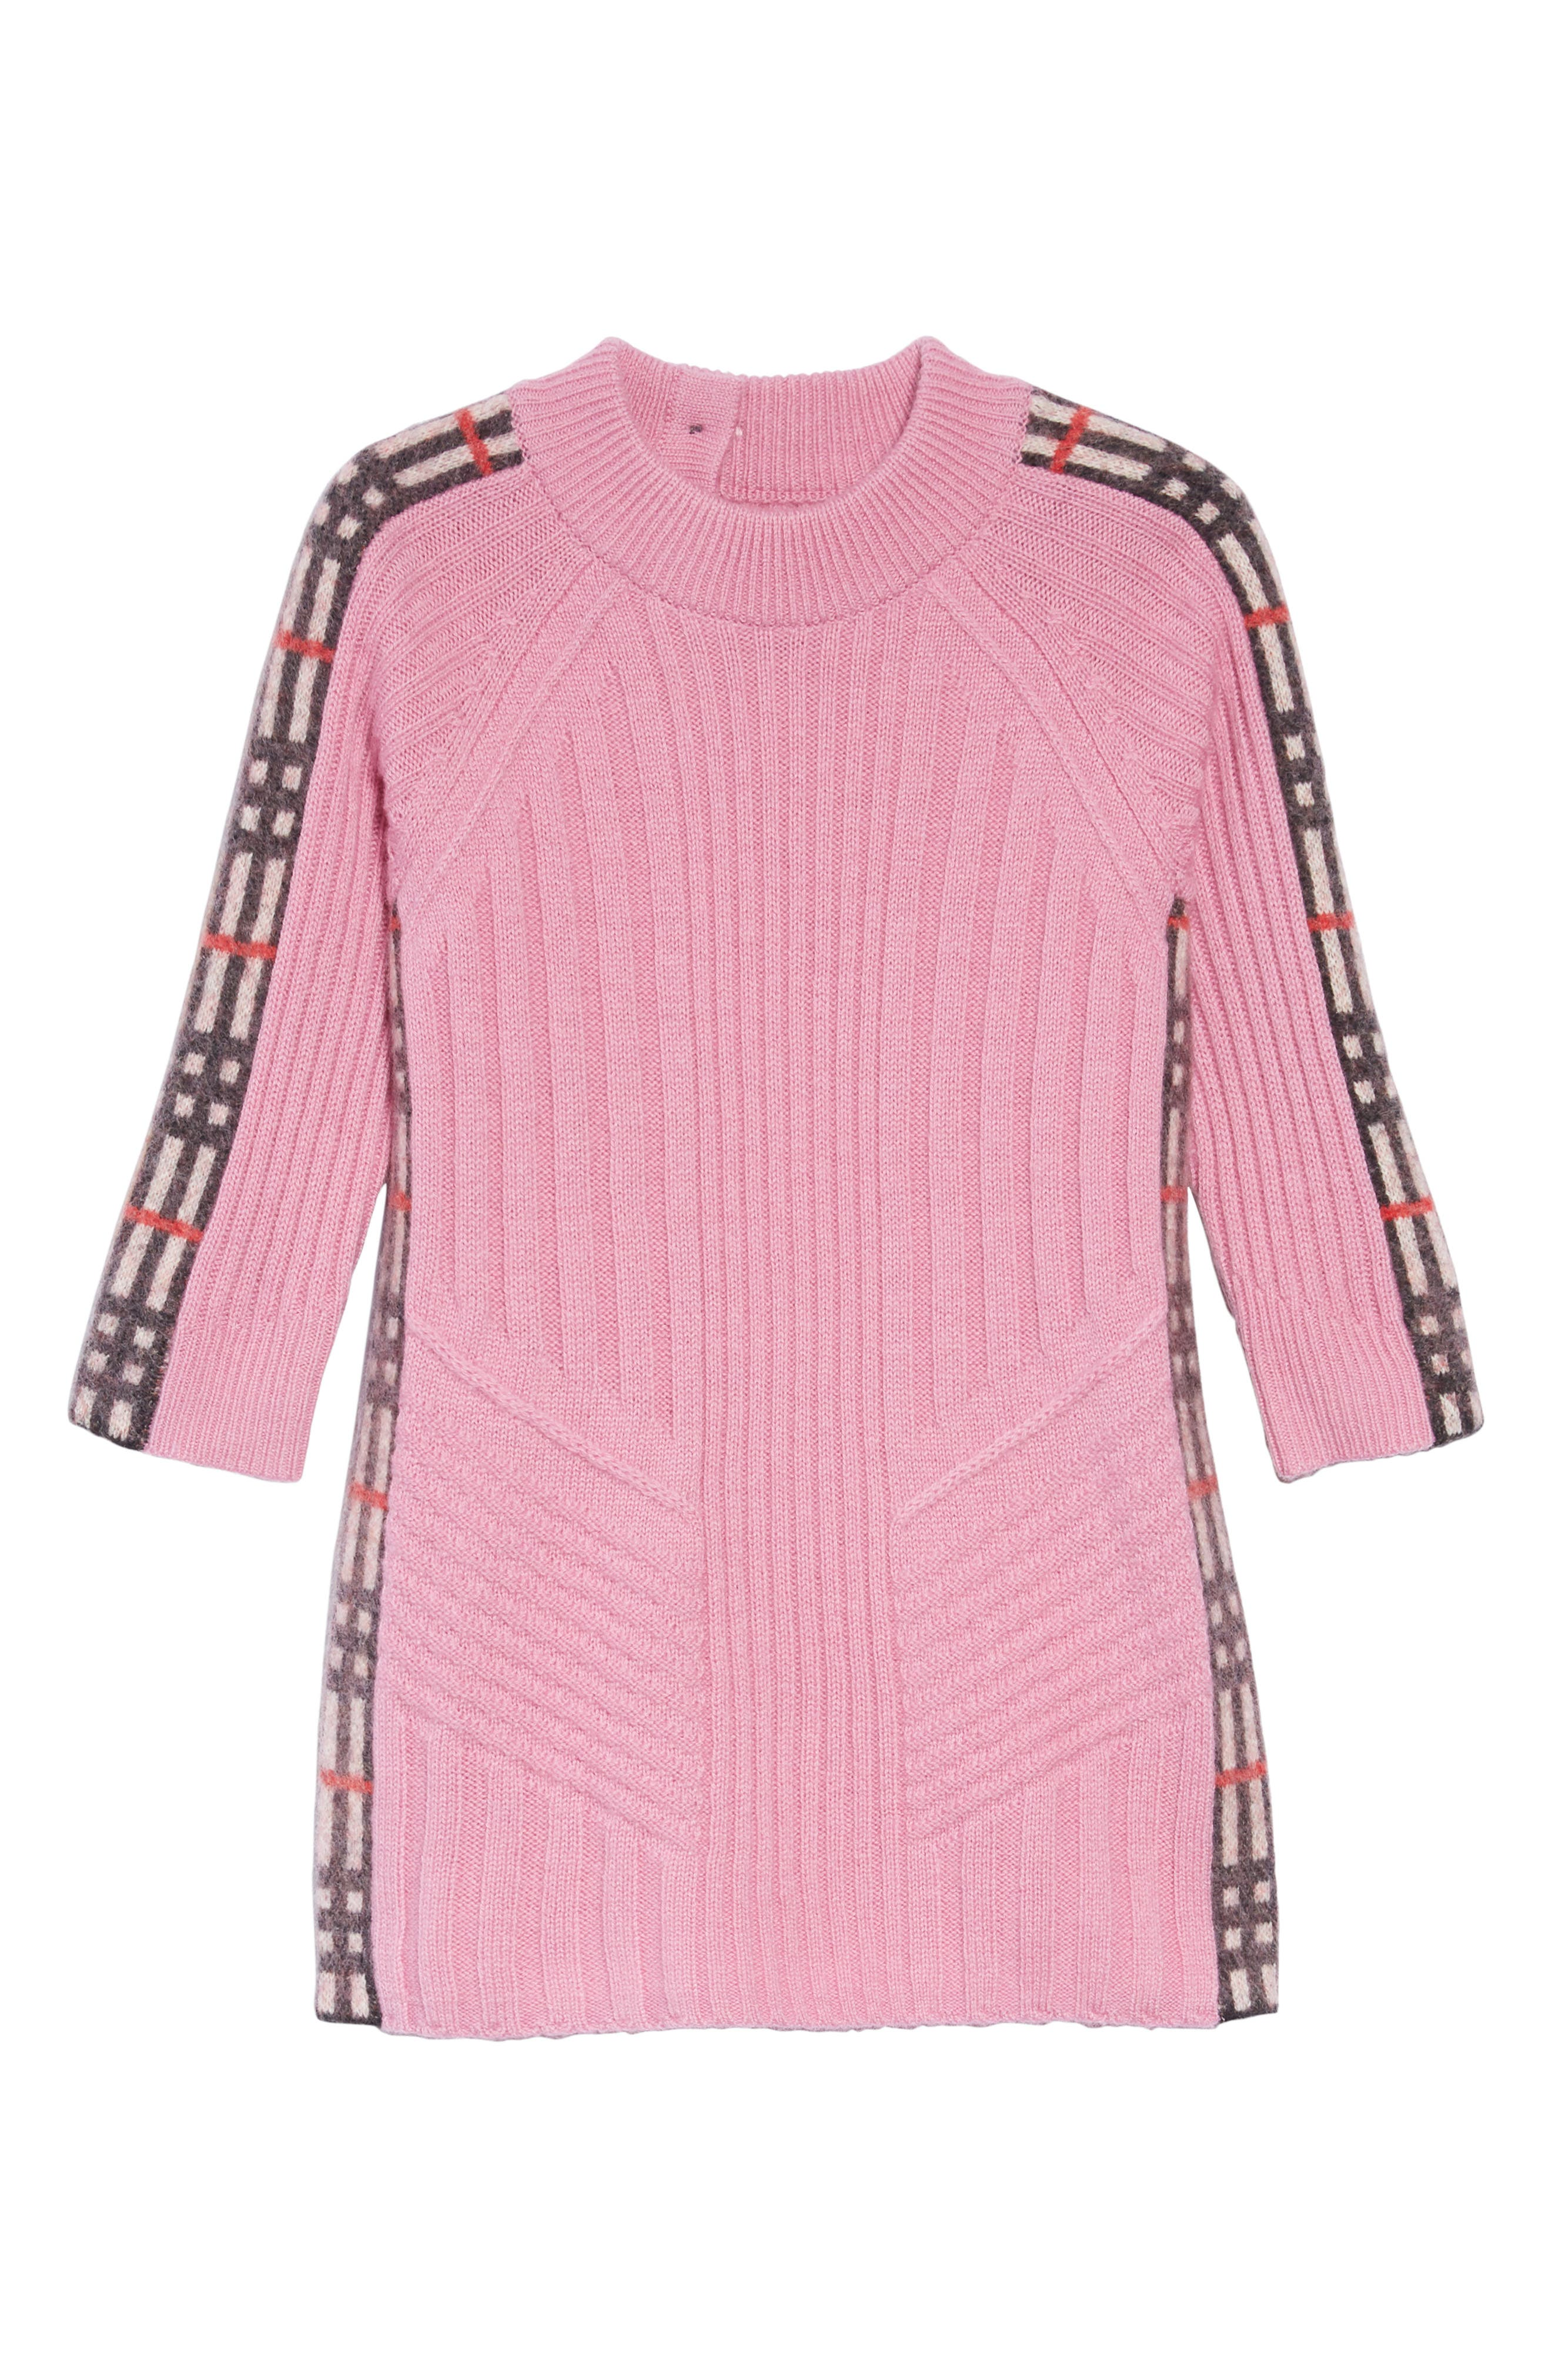 Kids Mini Cathina Check Detail Wool & Cashmere Sweater Dress,                         Main,                         color, ROSE PINK